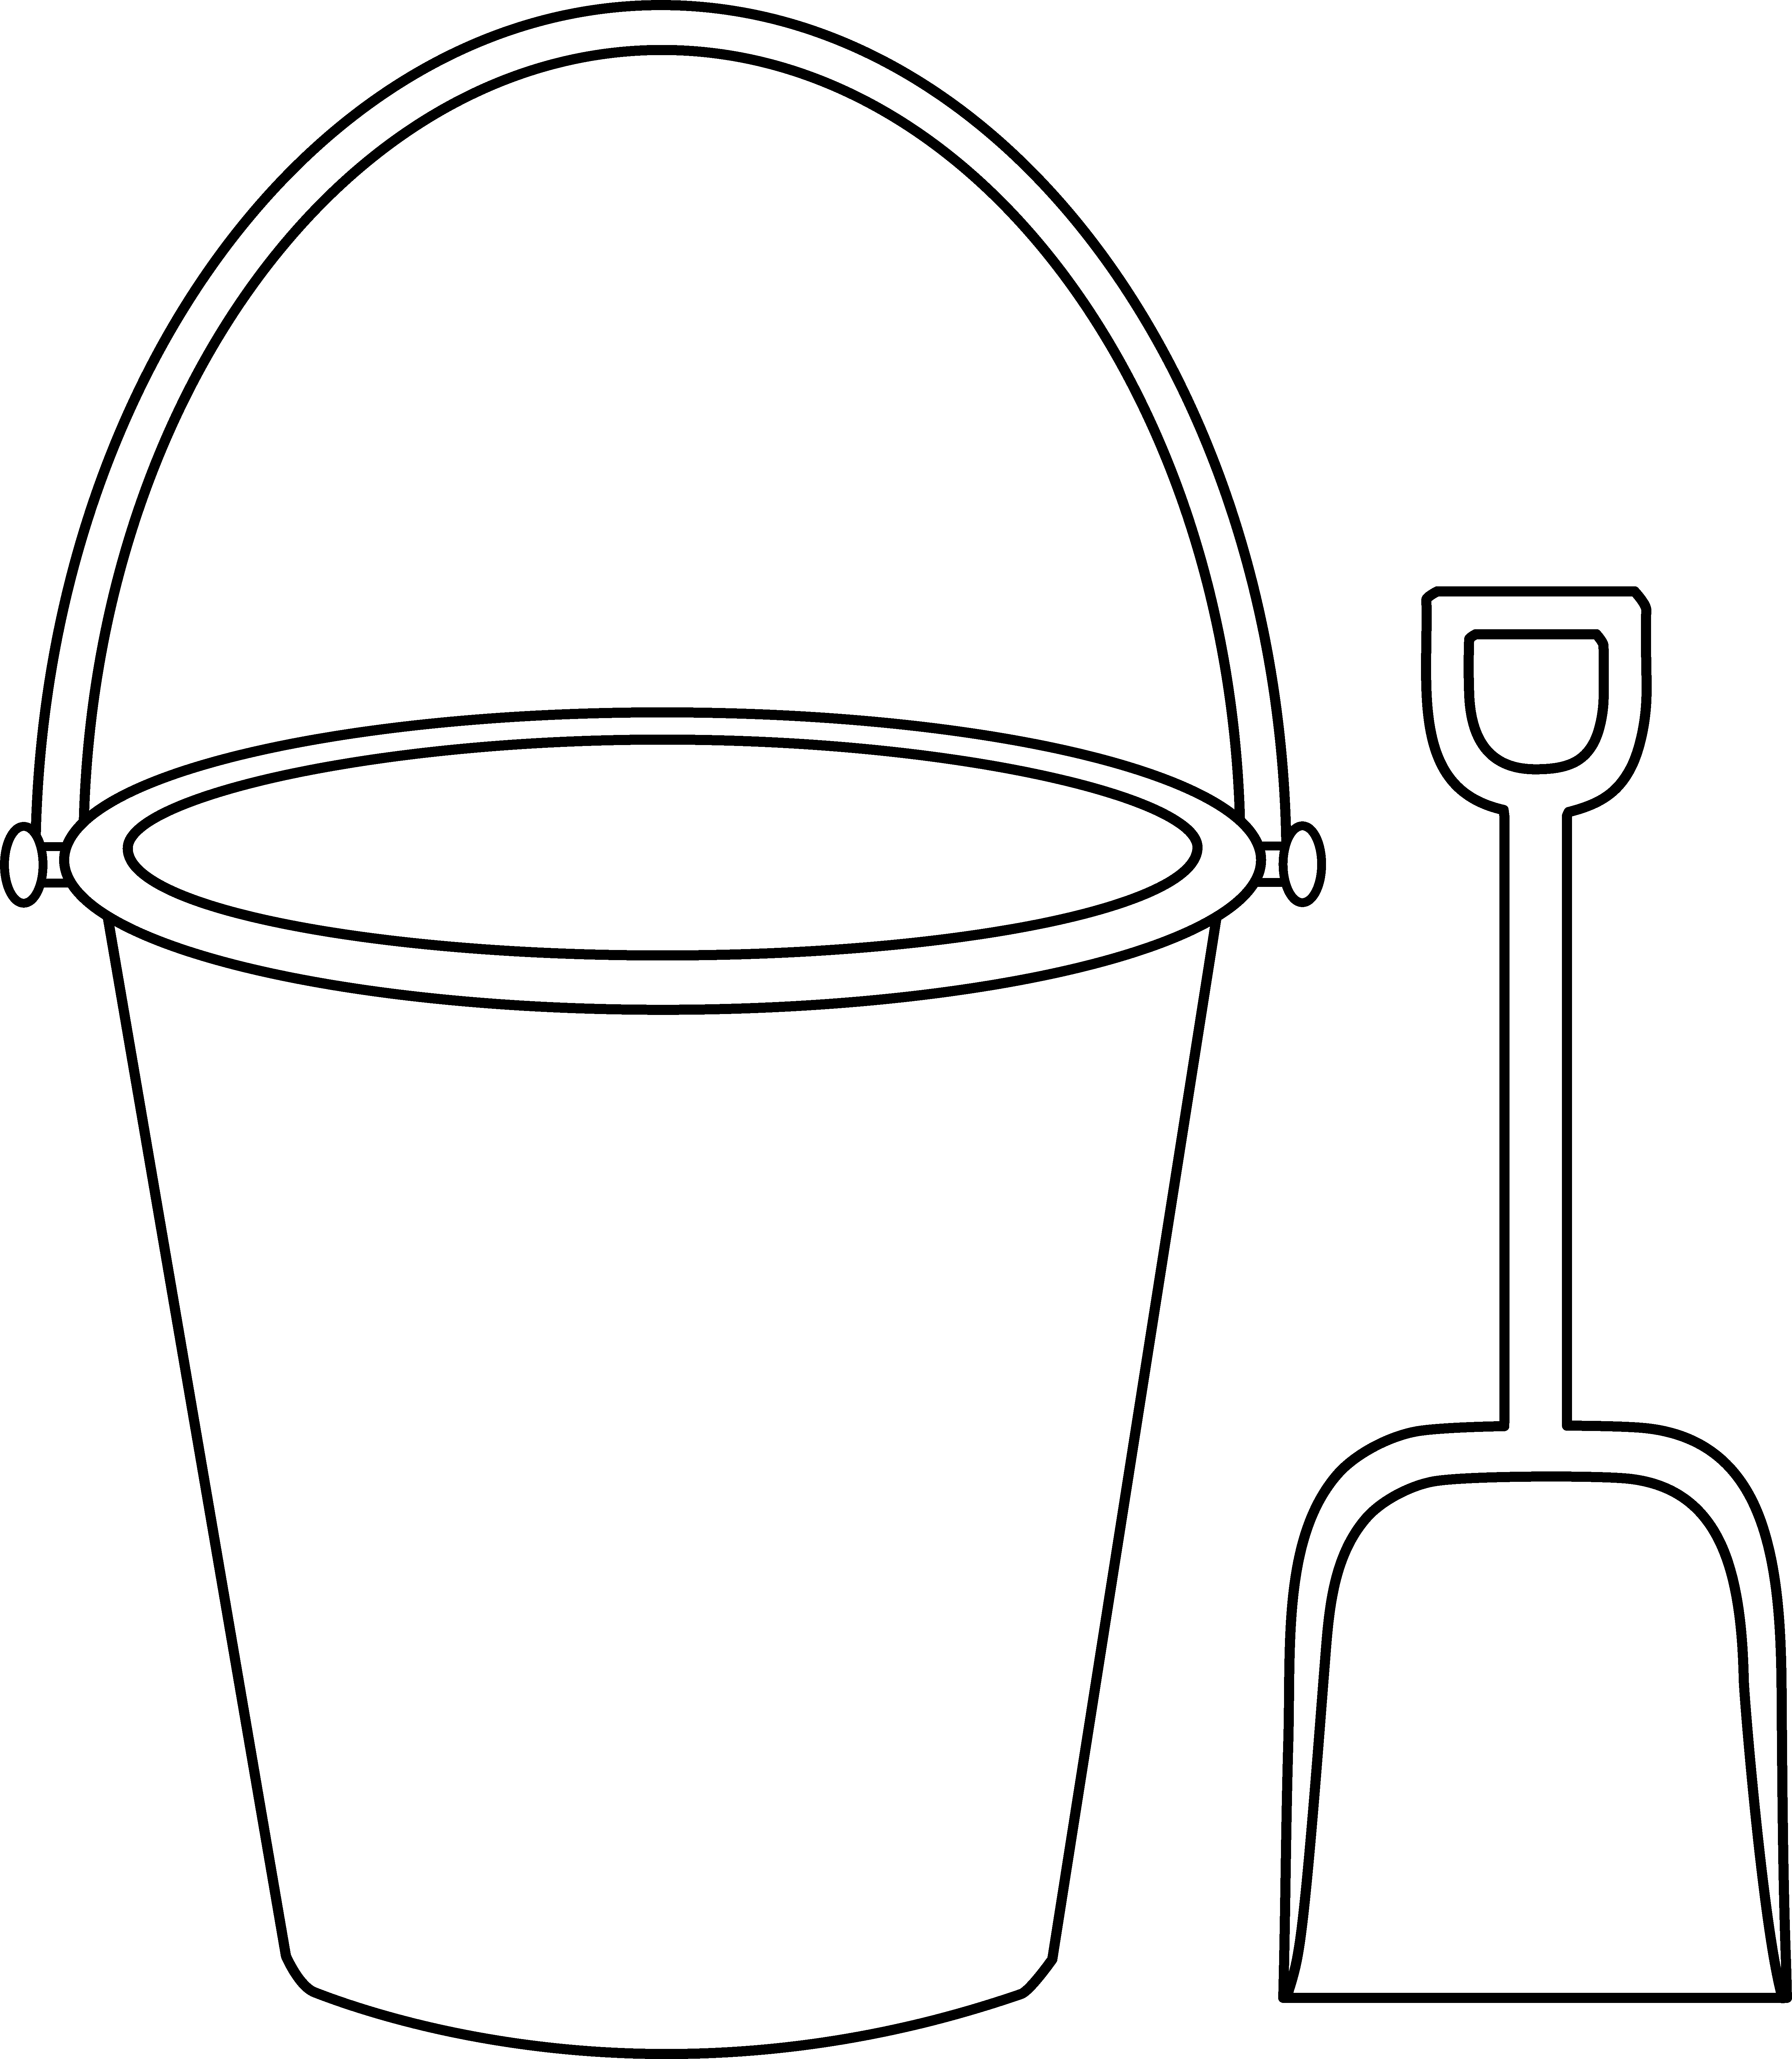 Bucket and Shovel Outline.